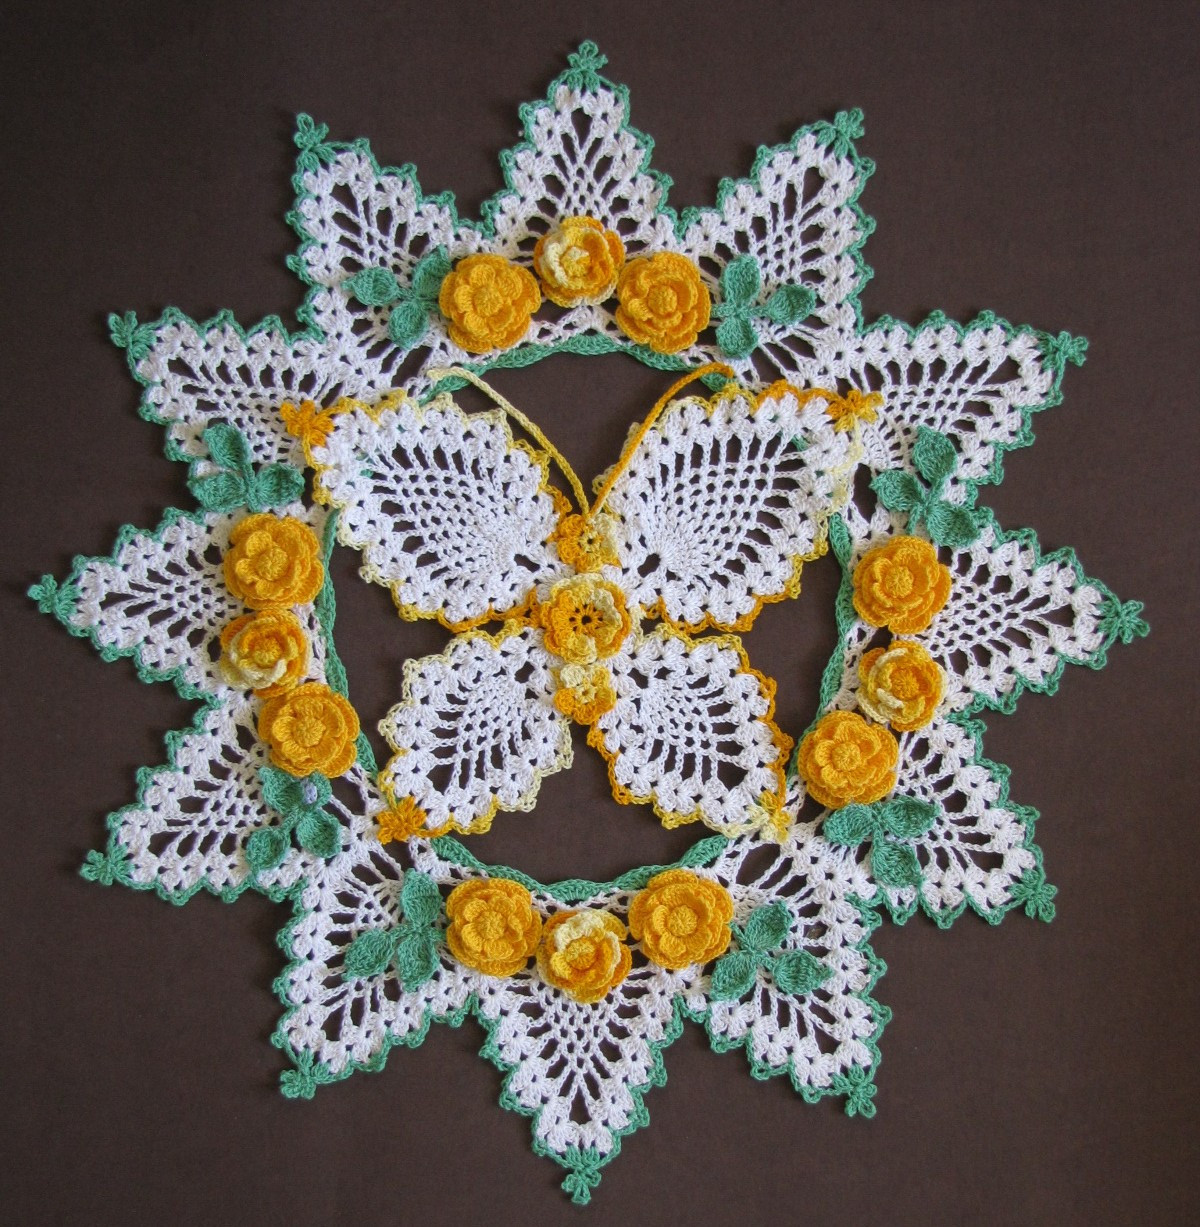 Free Pineapple Crochet Patterns Luxury Bellacrochet April 2011 Of Perfect 46 Pictures Free Pineapple Crochet Patterns